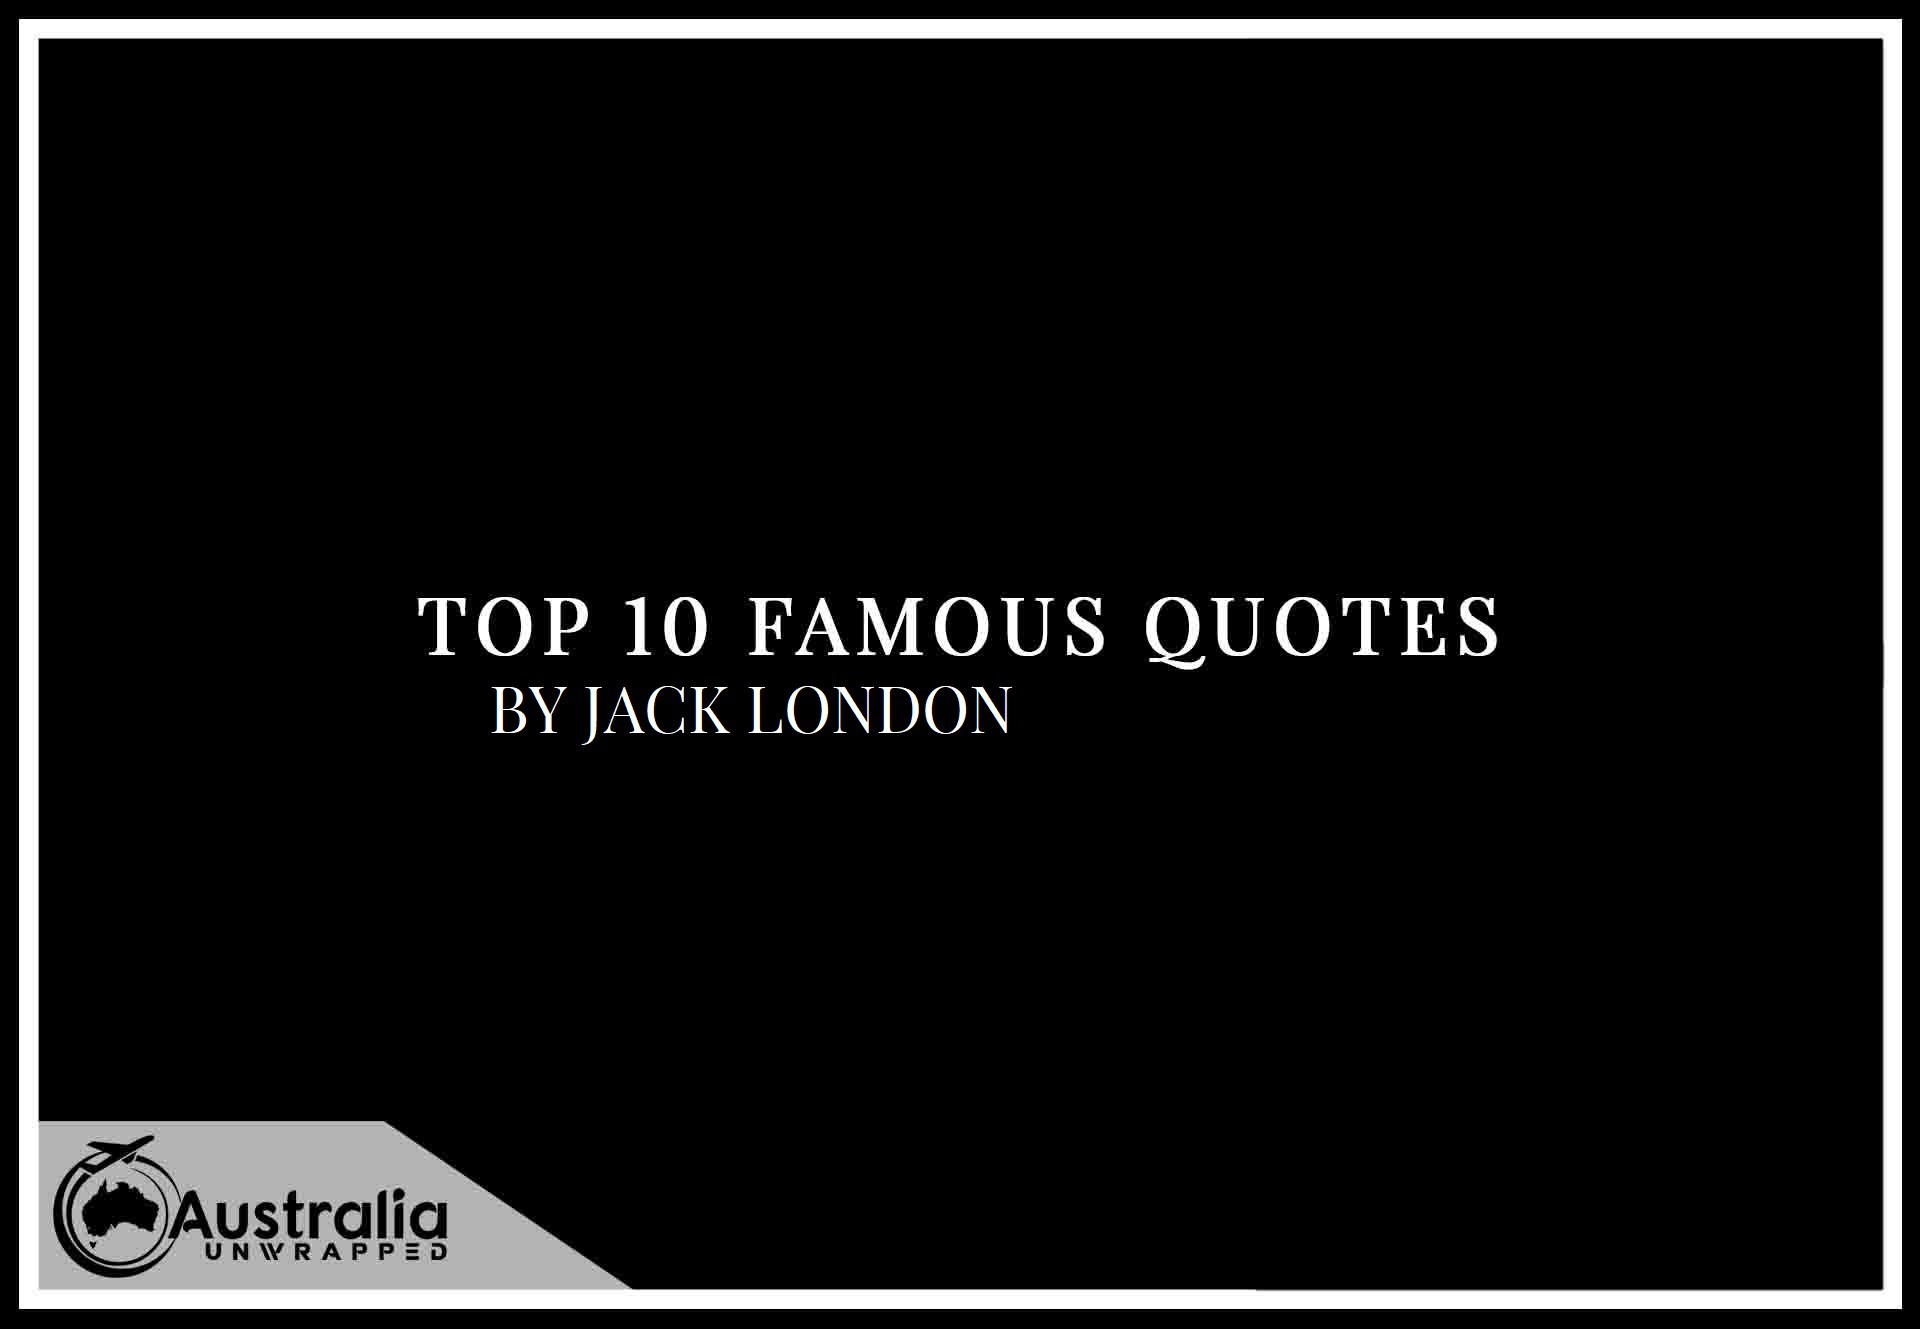 Top 10 Famous Quotes by Author Jack London